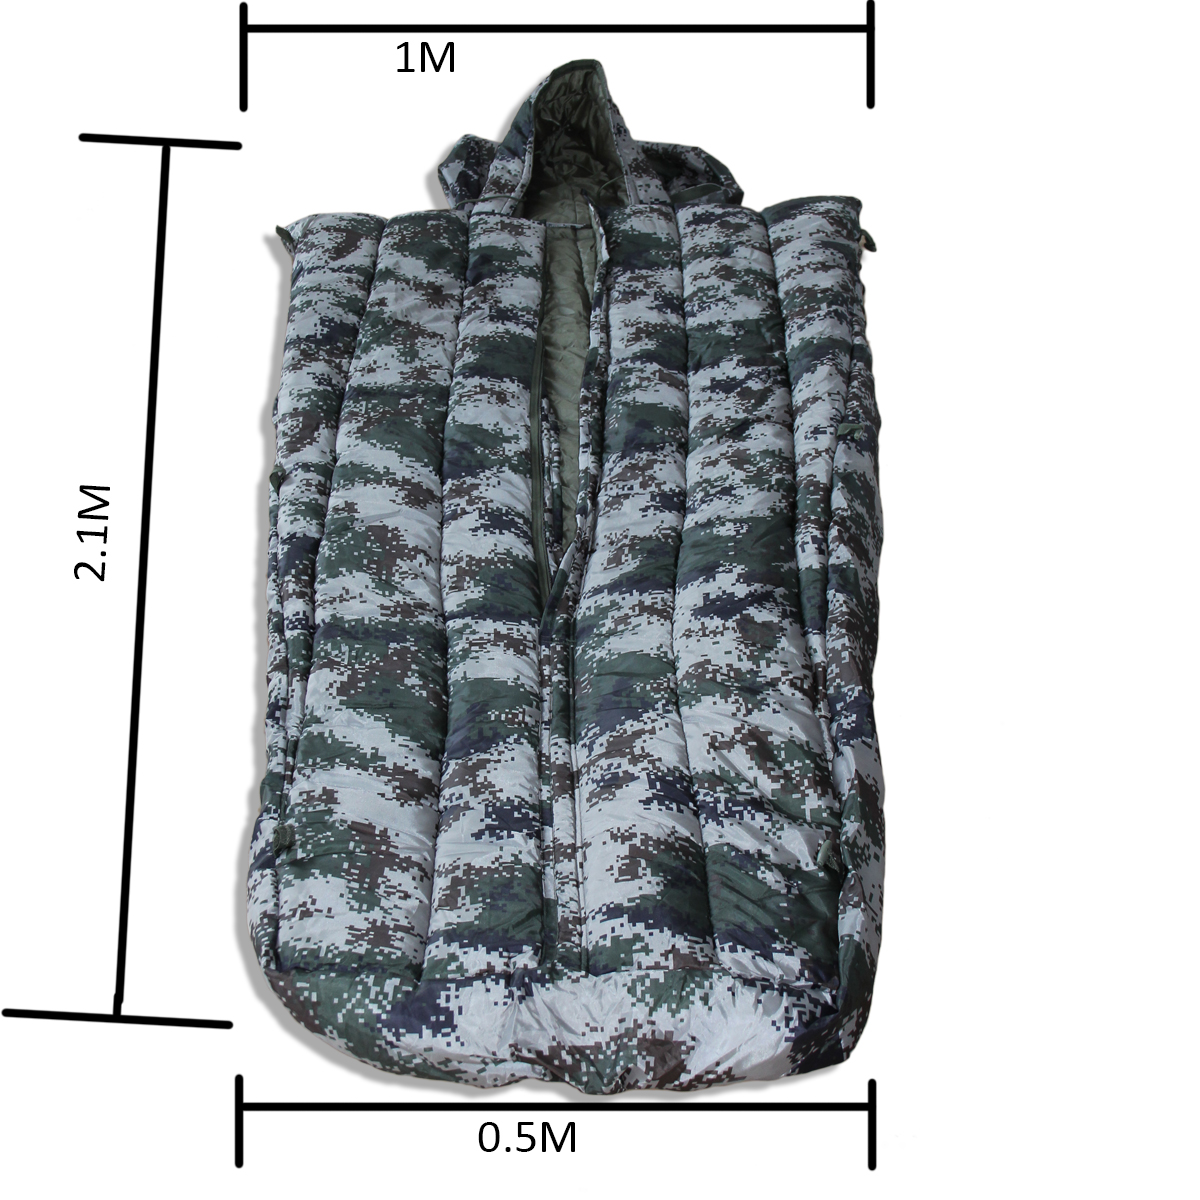 Digital Camouflage fadac field outdoor thermal cotton overcoat sleeping bag camping envelope sleeping bag